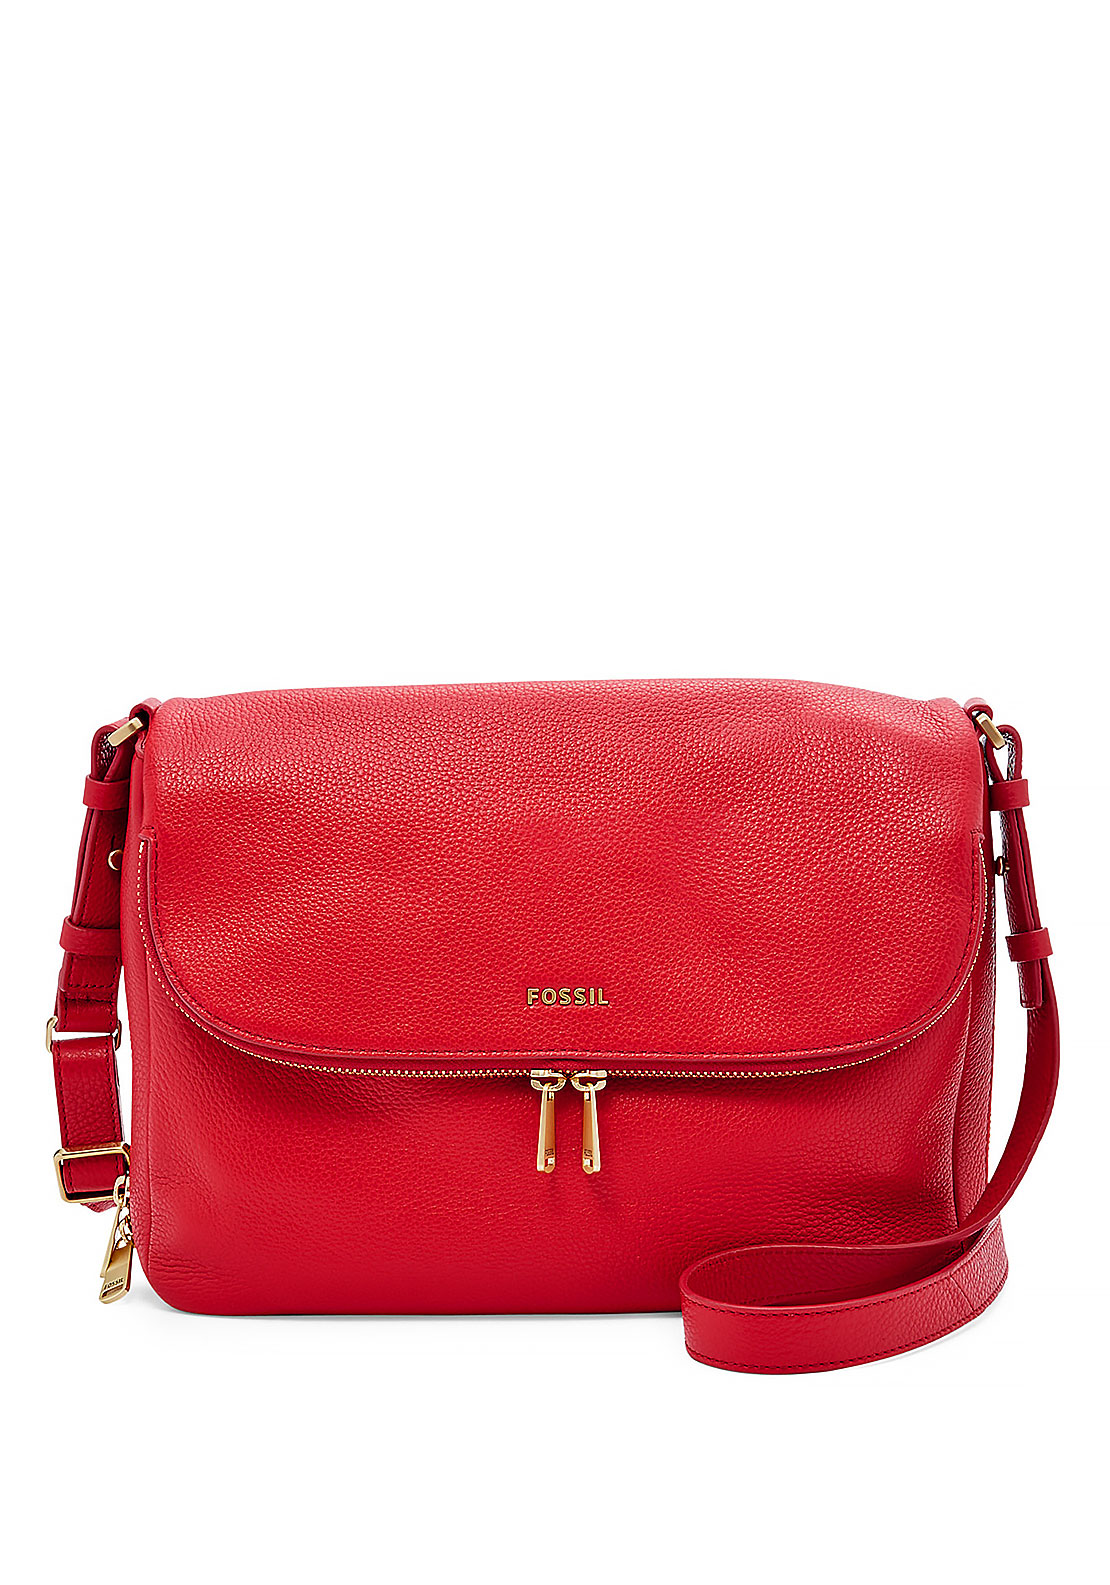 Fossil Preston Leather Flap Crossbody Bag, Tomato Red